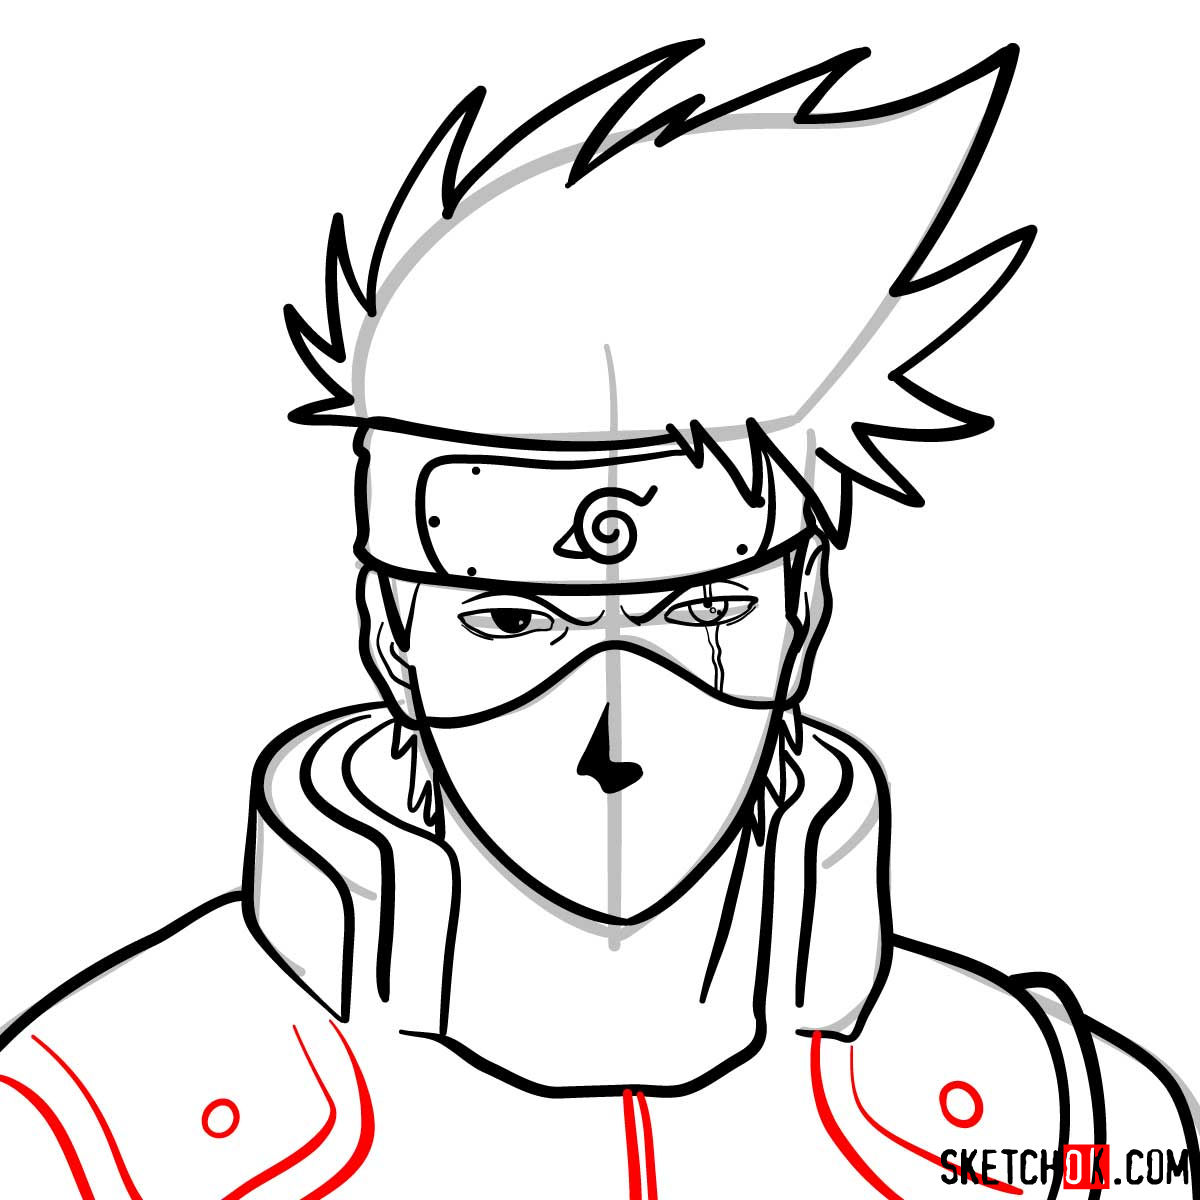 How to draw the face of Kakashi Hatake (Naruto) - step 11